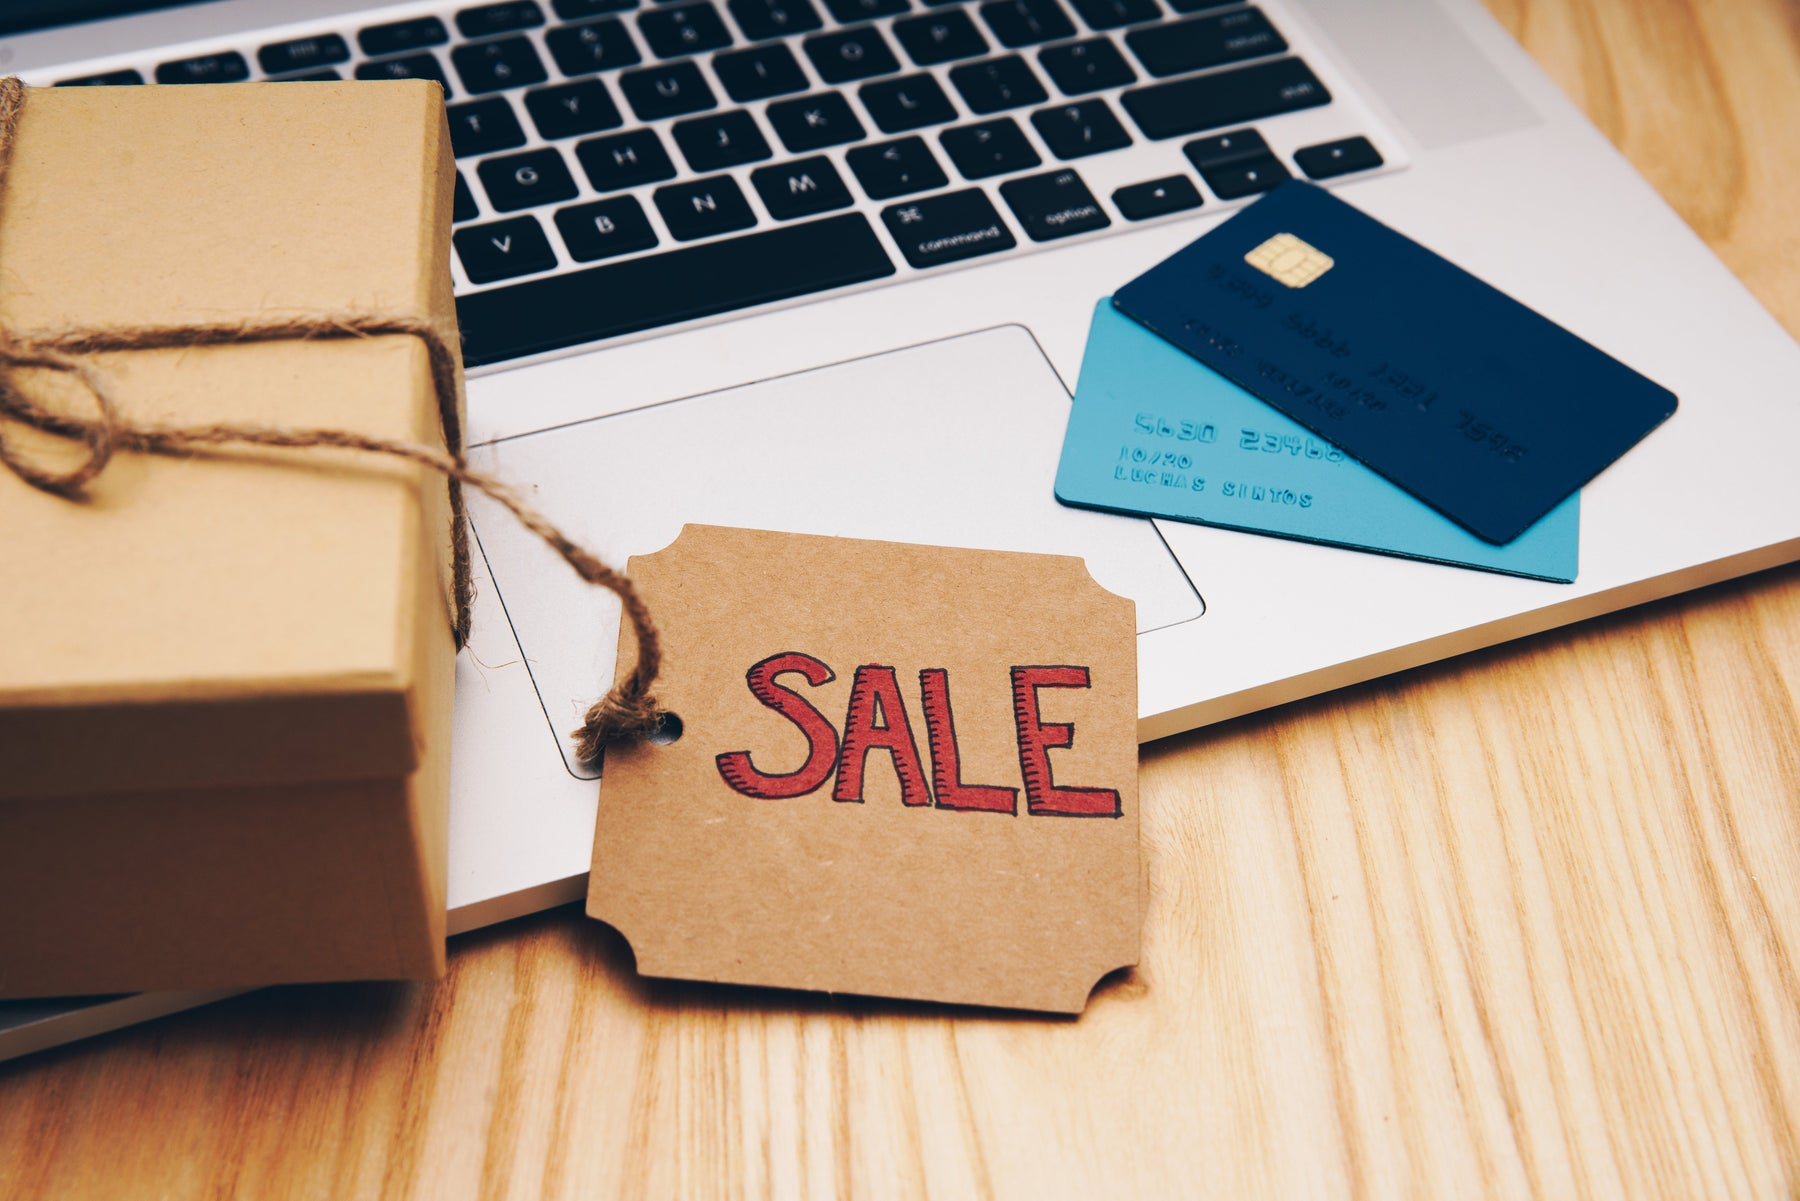 7 Effective Ways to Bargain Shop